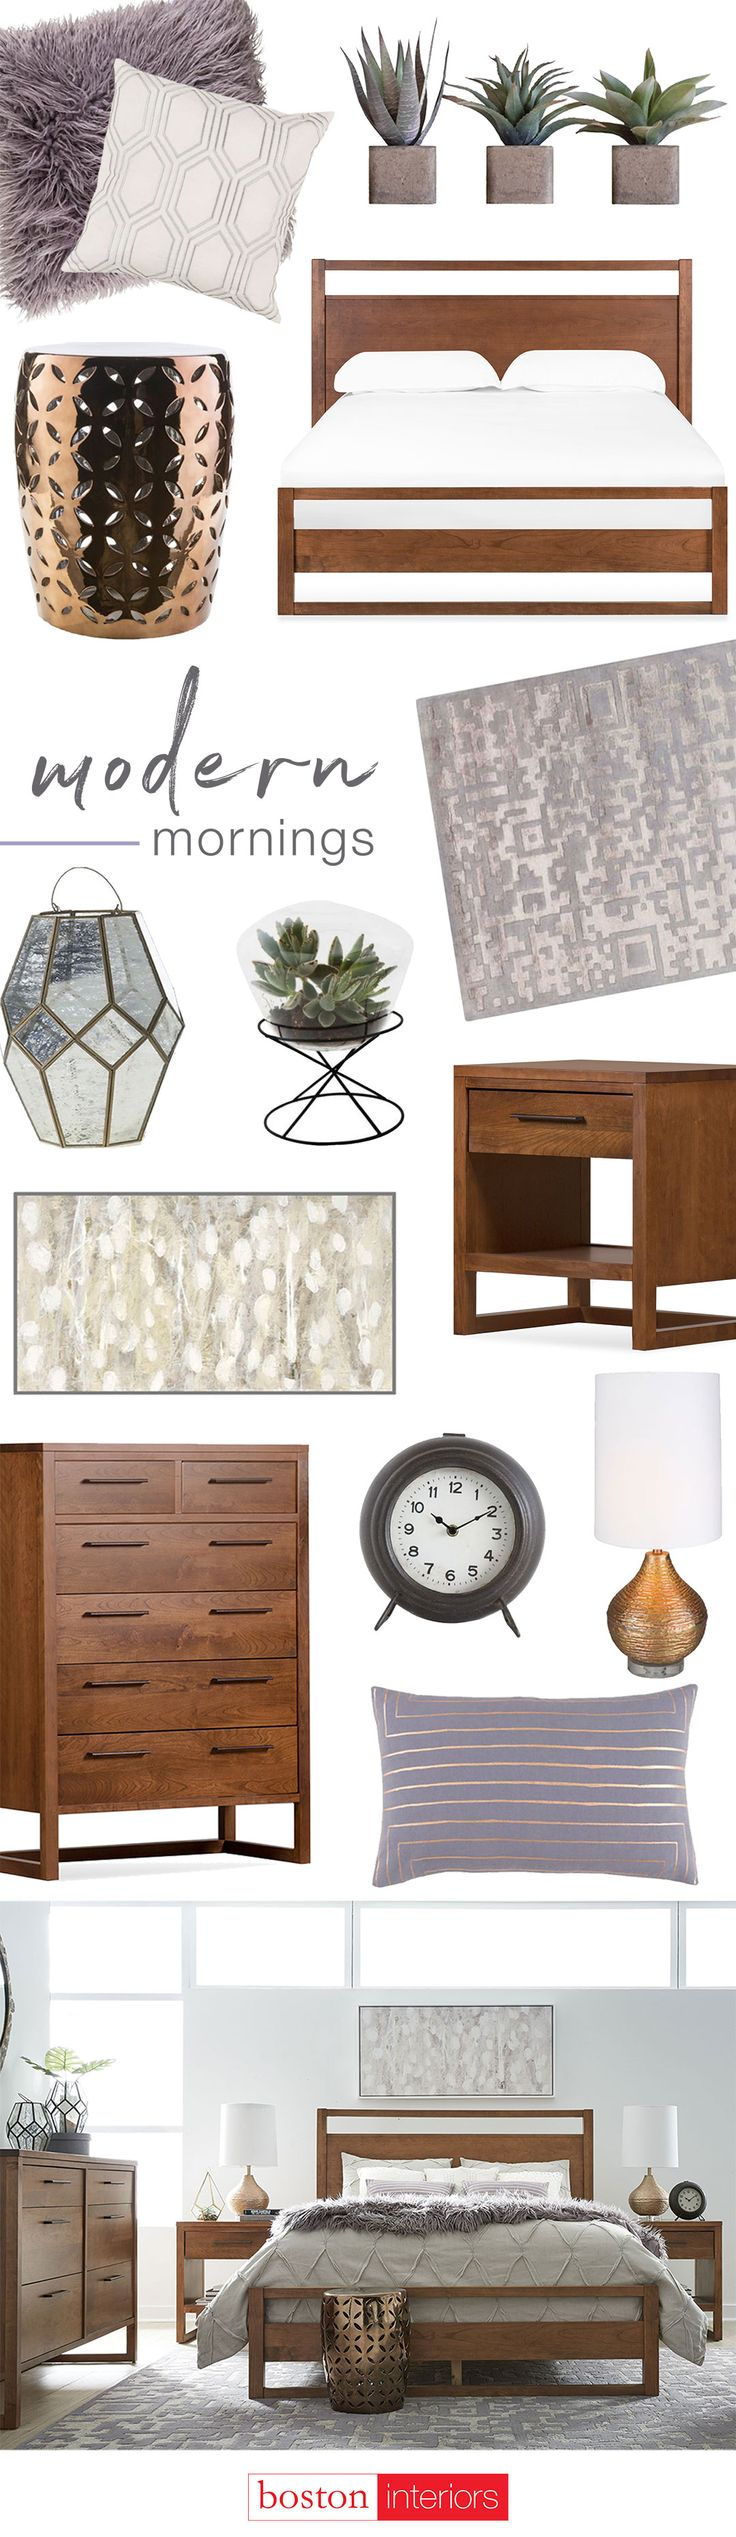 Metallic Accents Soft Textures And Clean Lines Make For A Modern Morning